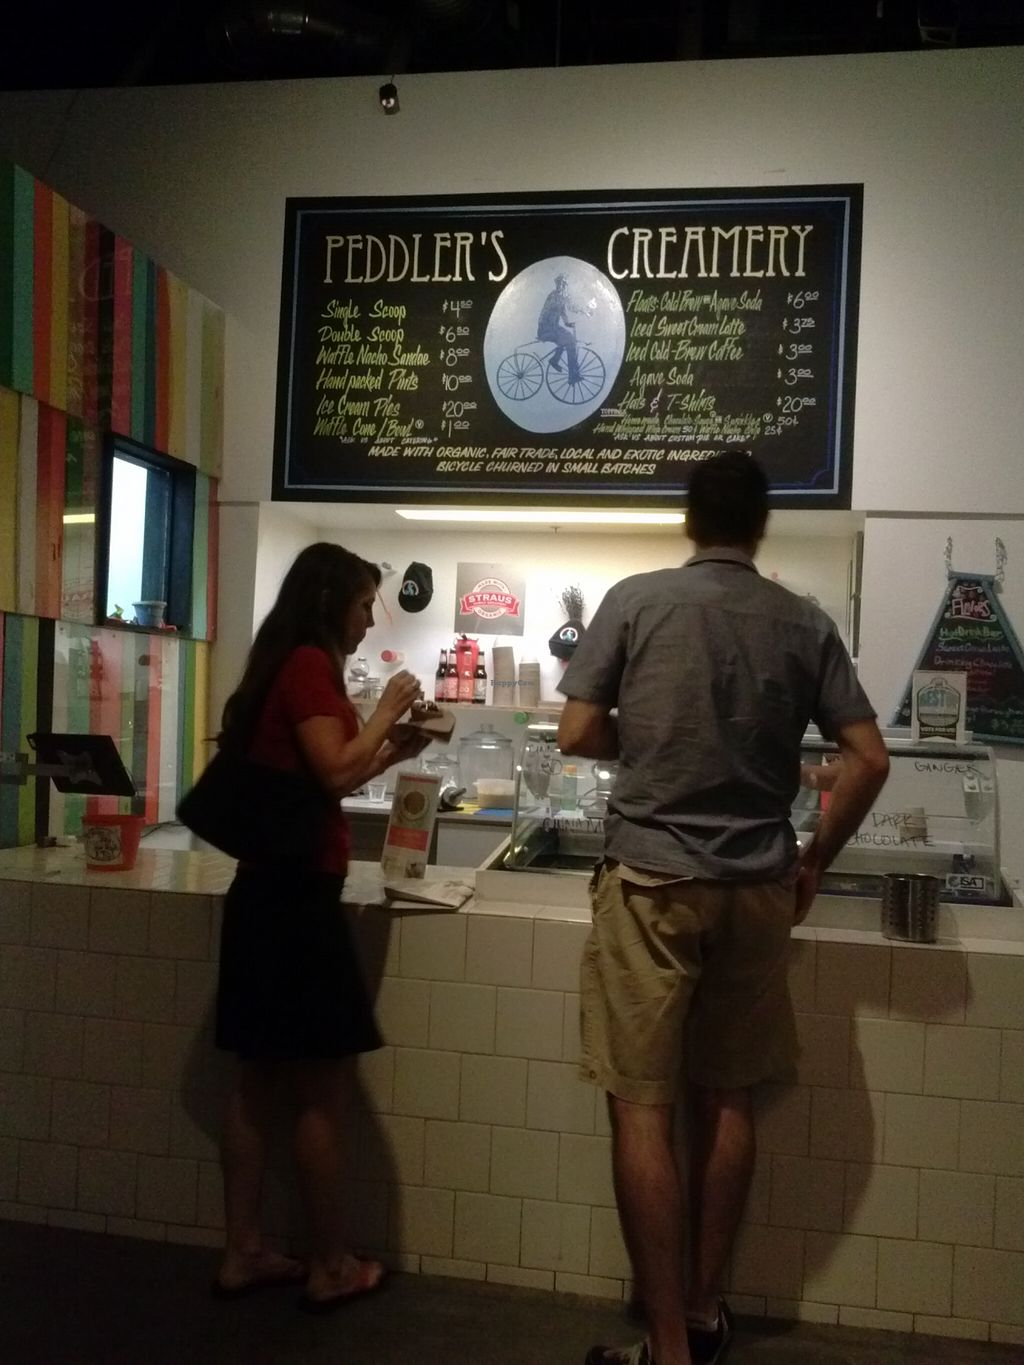 """Photo of Peddler's Creamery  by <a href=""""/members/profile/Sonja%20and%20Dirk"""">Sonja and Dirk</a> <br/>counter <br/> August 10, 2015  - <a href='/contact/abuse/image/51962/113028'>Report</a>"""